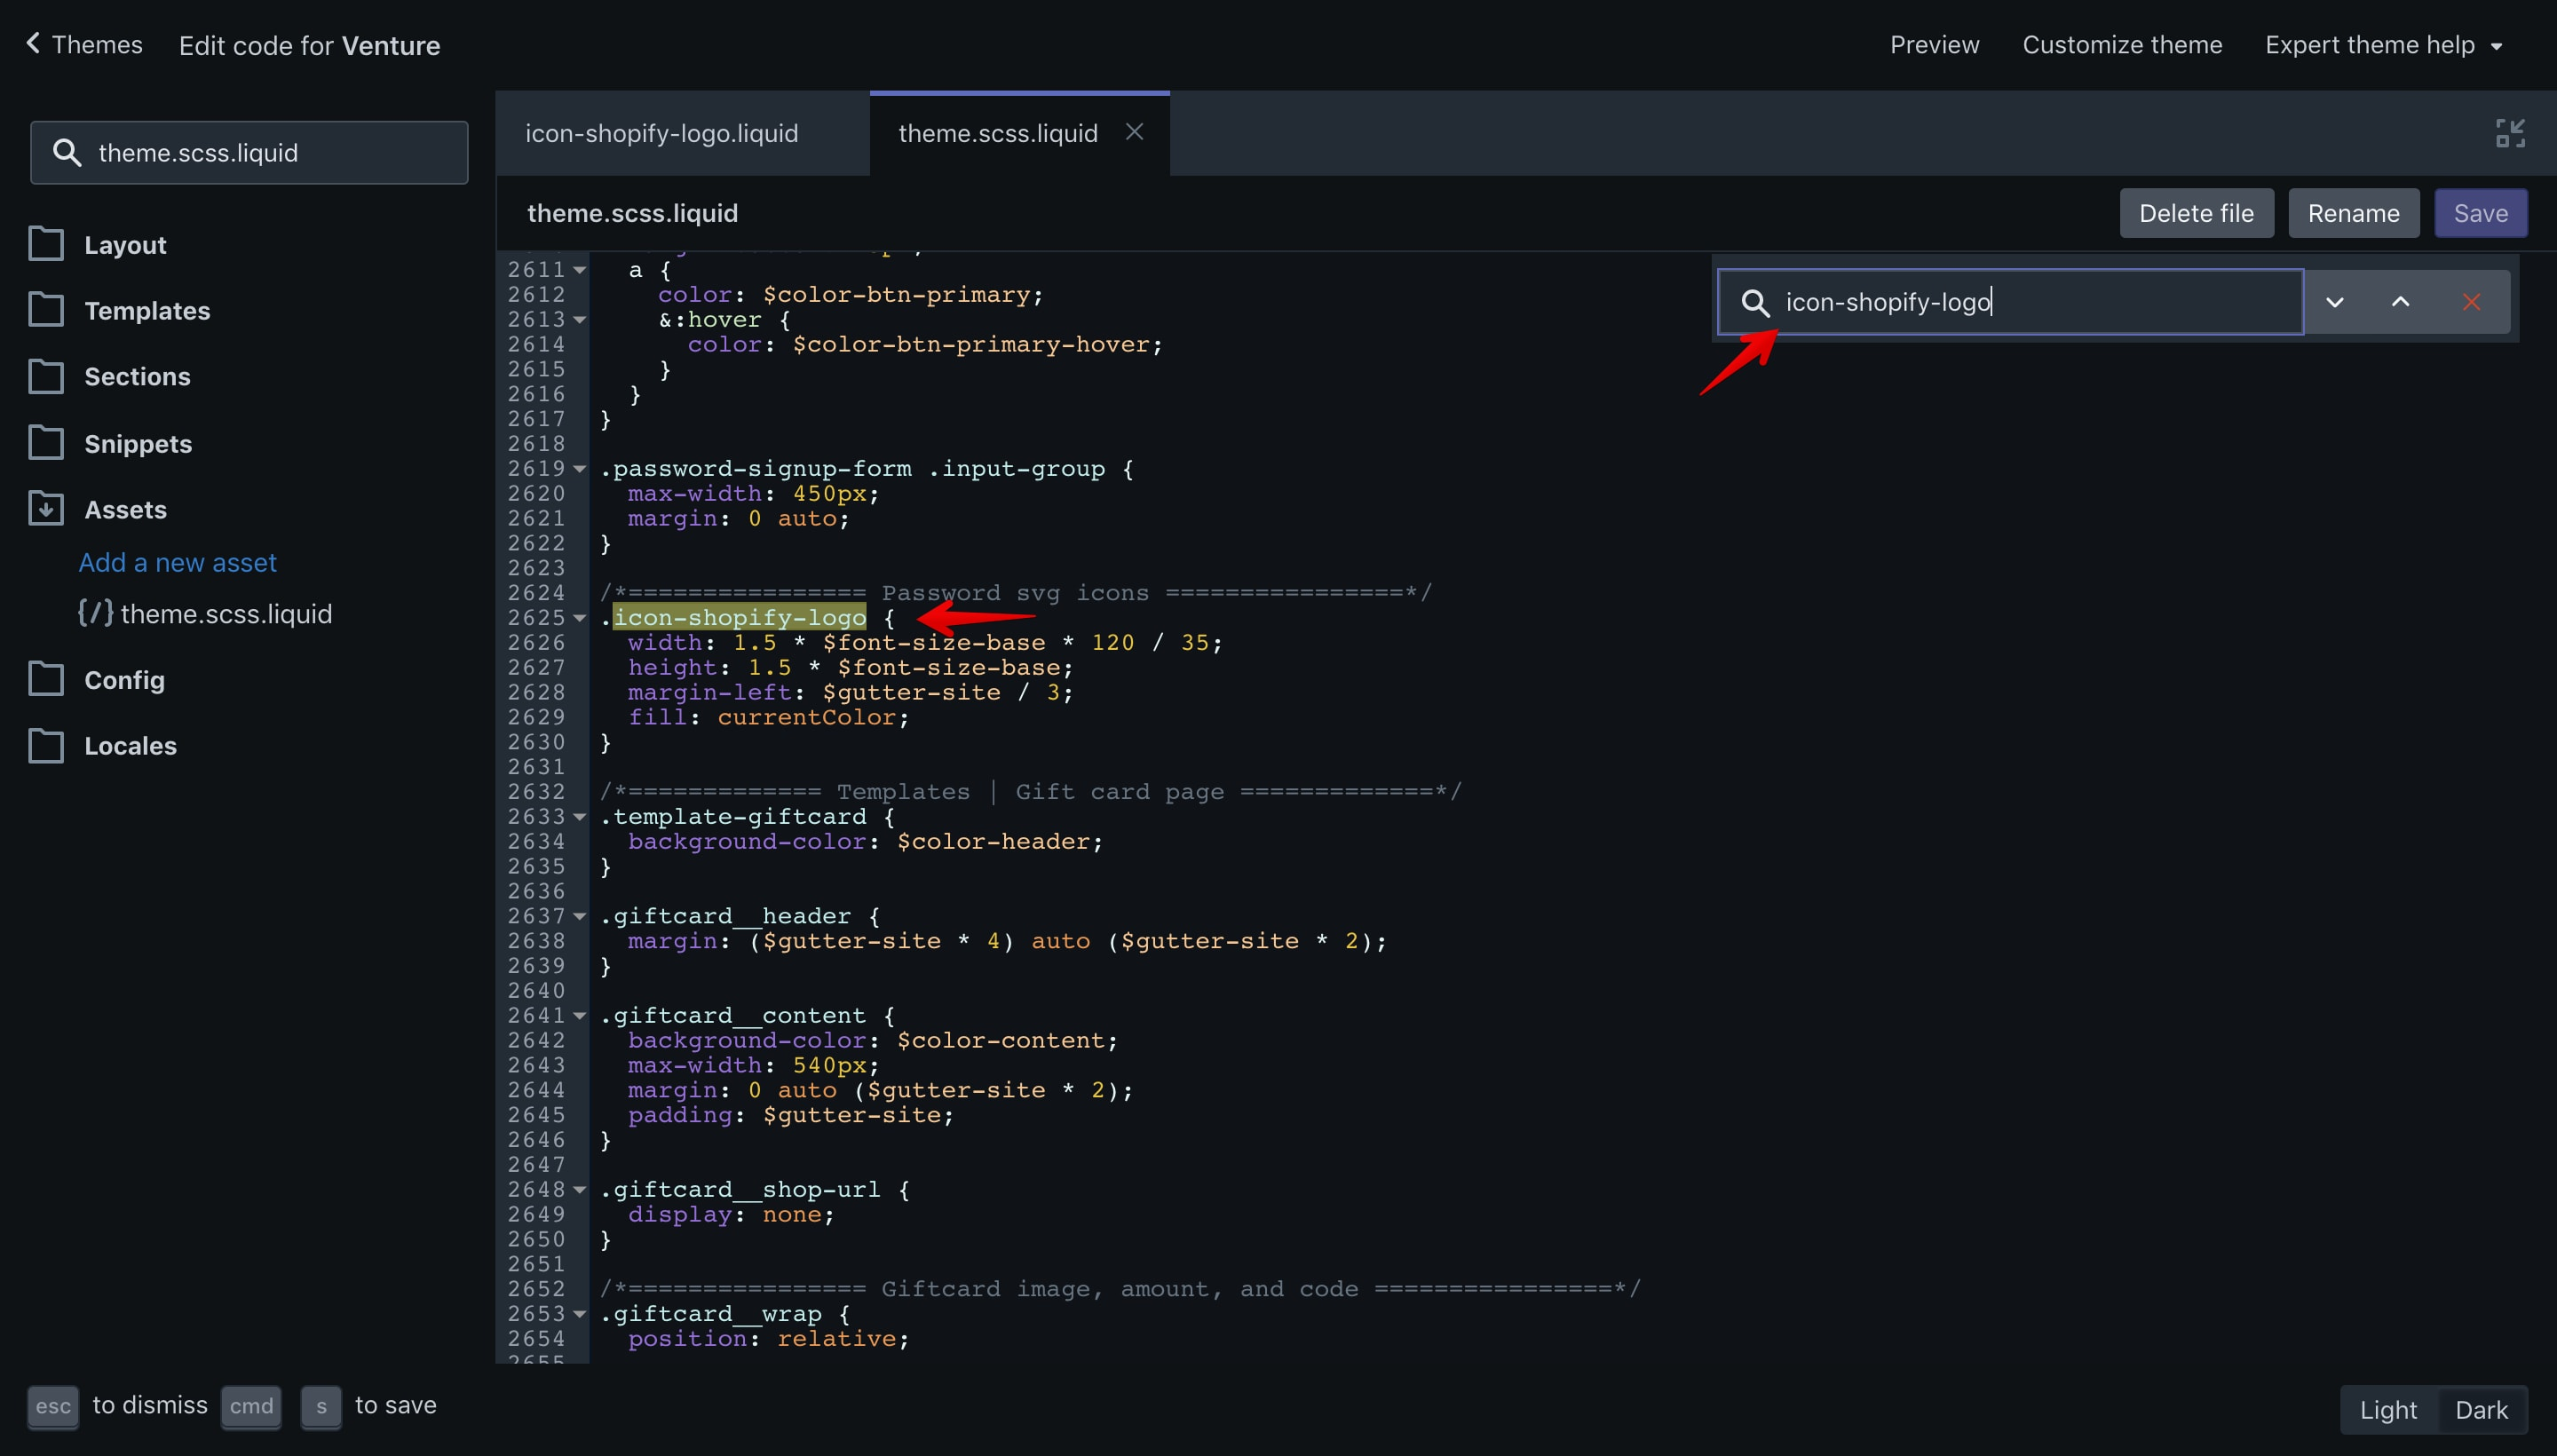 """Search for the """"icon-shopify-logo"""" CSS class in the code editor."""